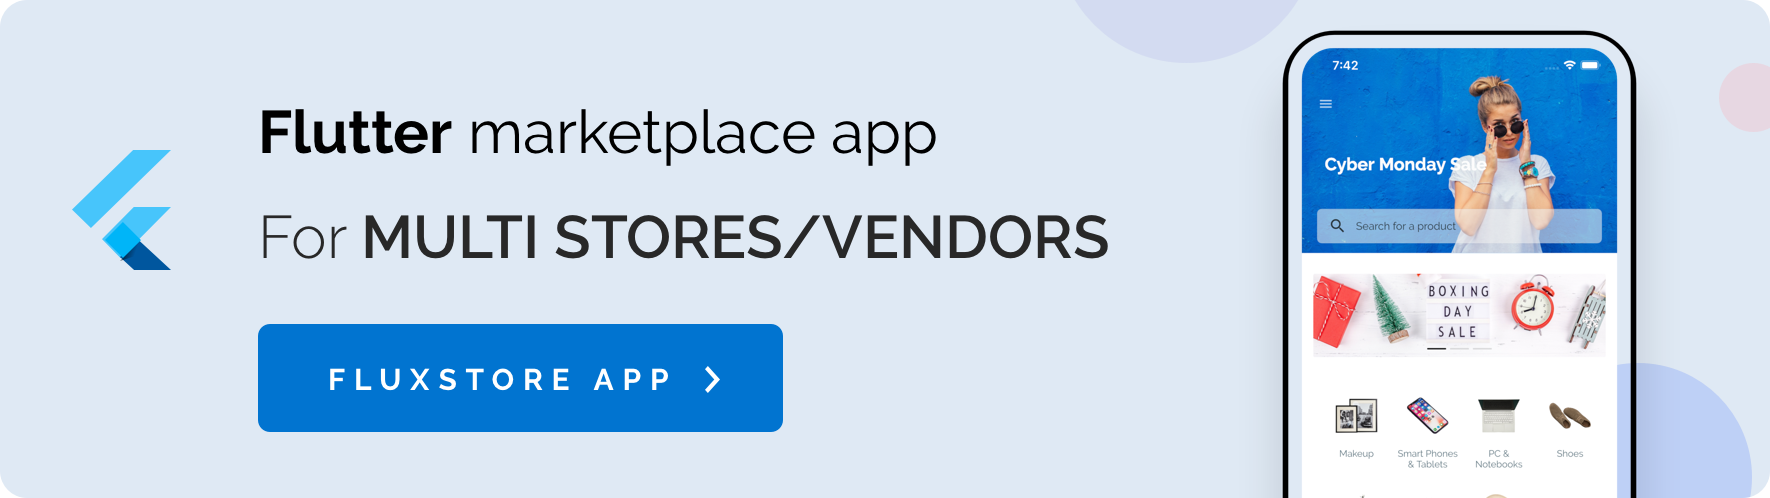 MStore Multi Vendor - Complete React Native template for WooCommerce - 24